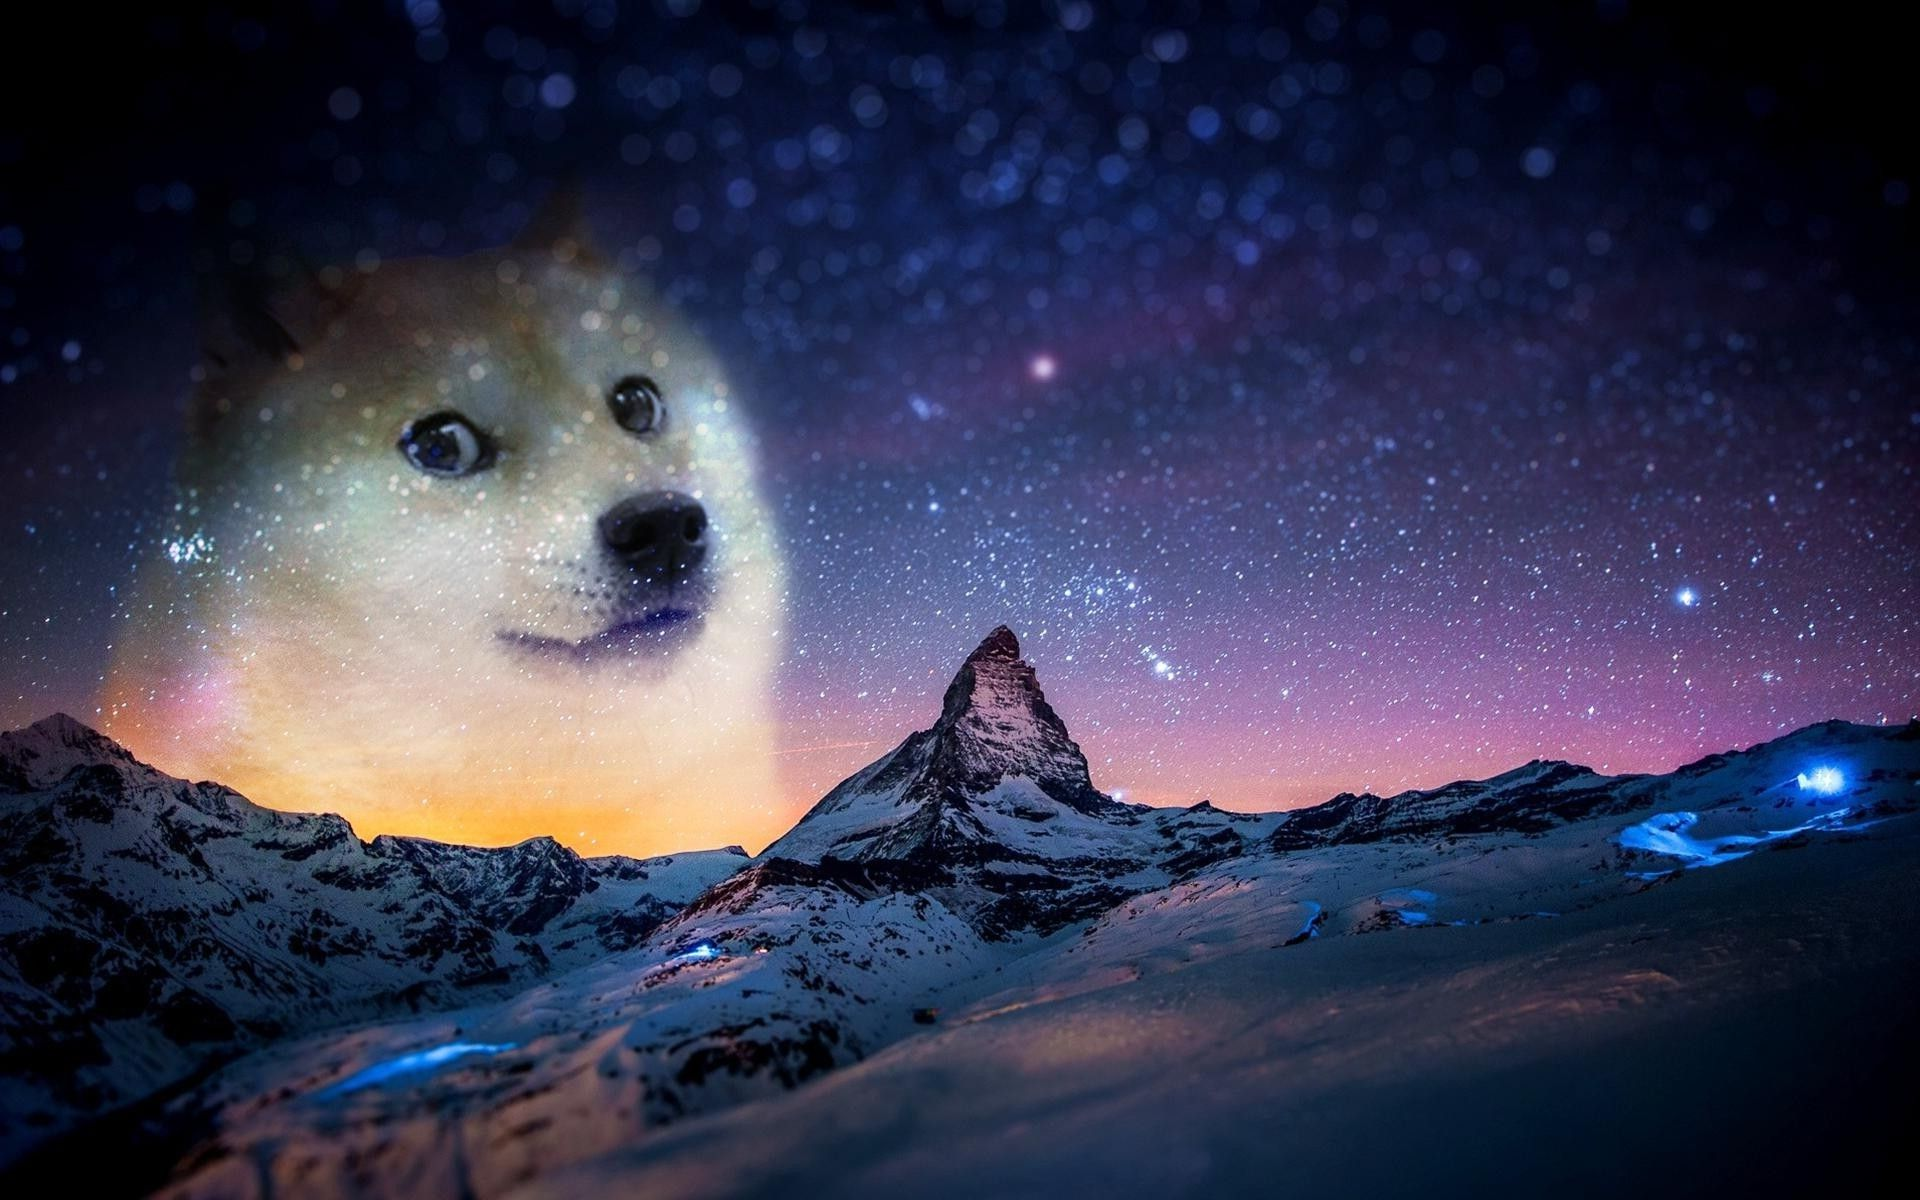 Doge Wallpaper High Quality Doge Meme Top Hd Wallpapers Doge